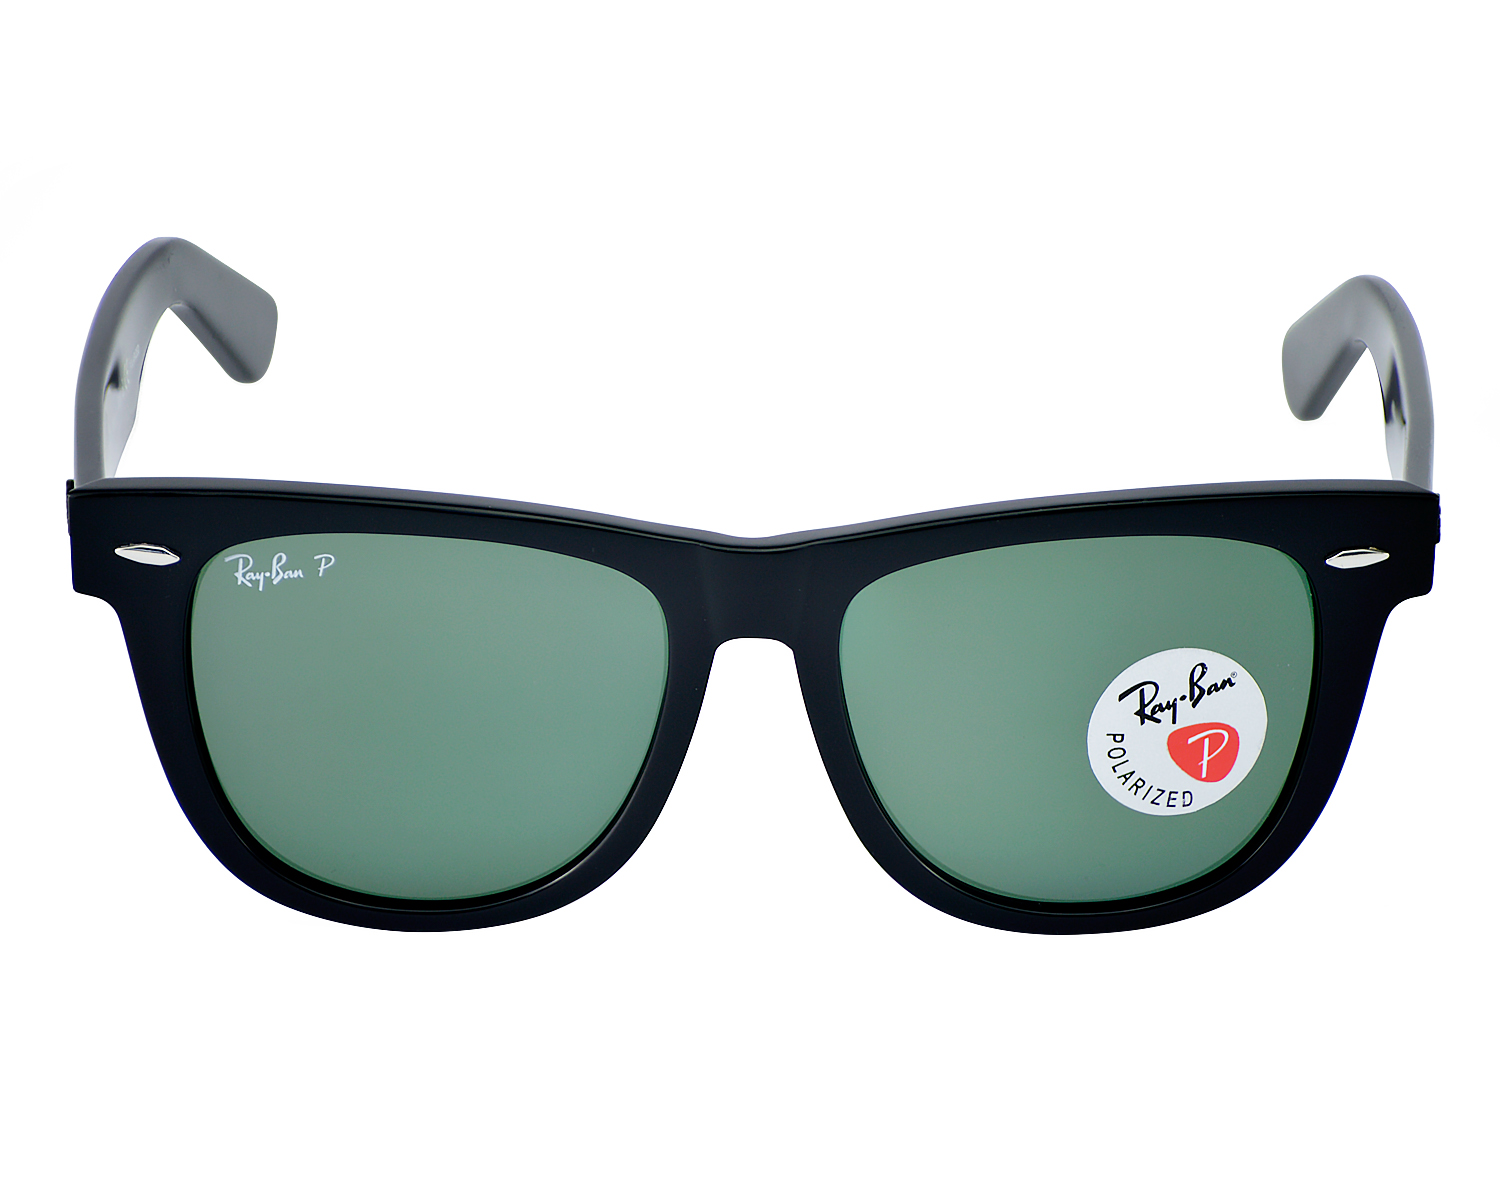 814521943a Ray Ban RB2140 901 58 Original Wayfarer Classics Black Frame  Polarized  Green Classic G-15 lenses Sunglasses 54mm